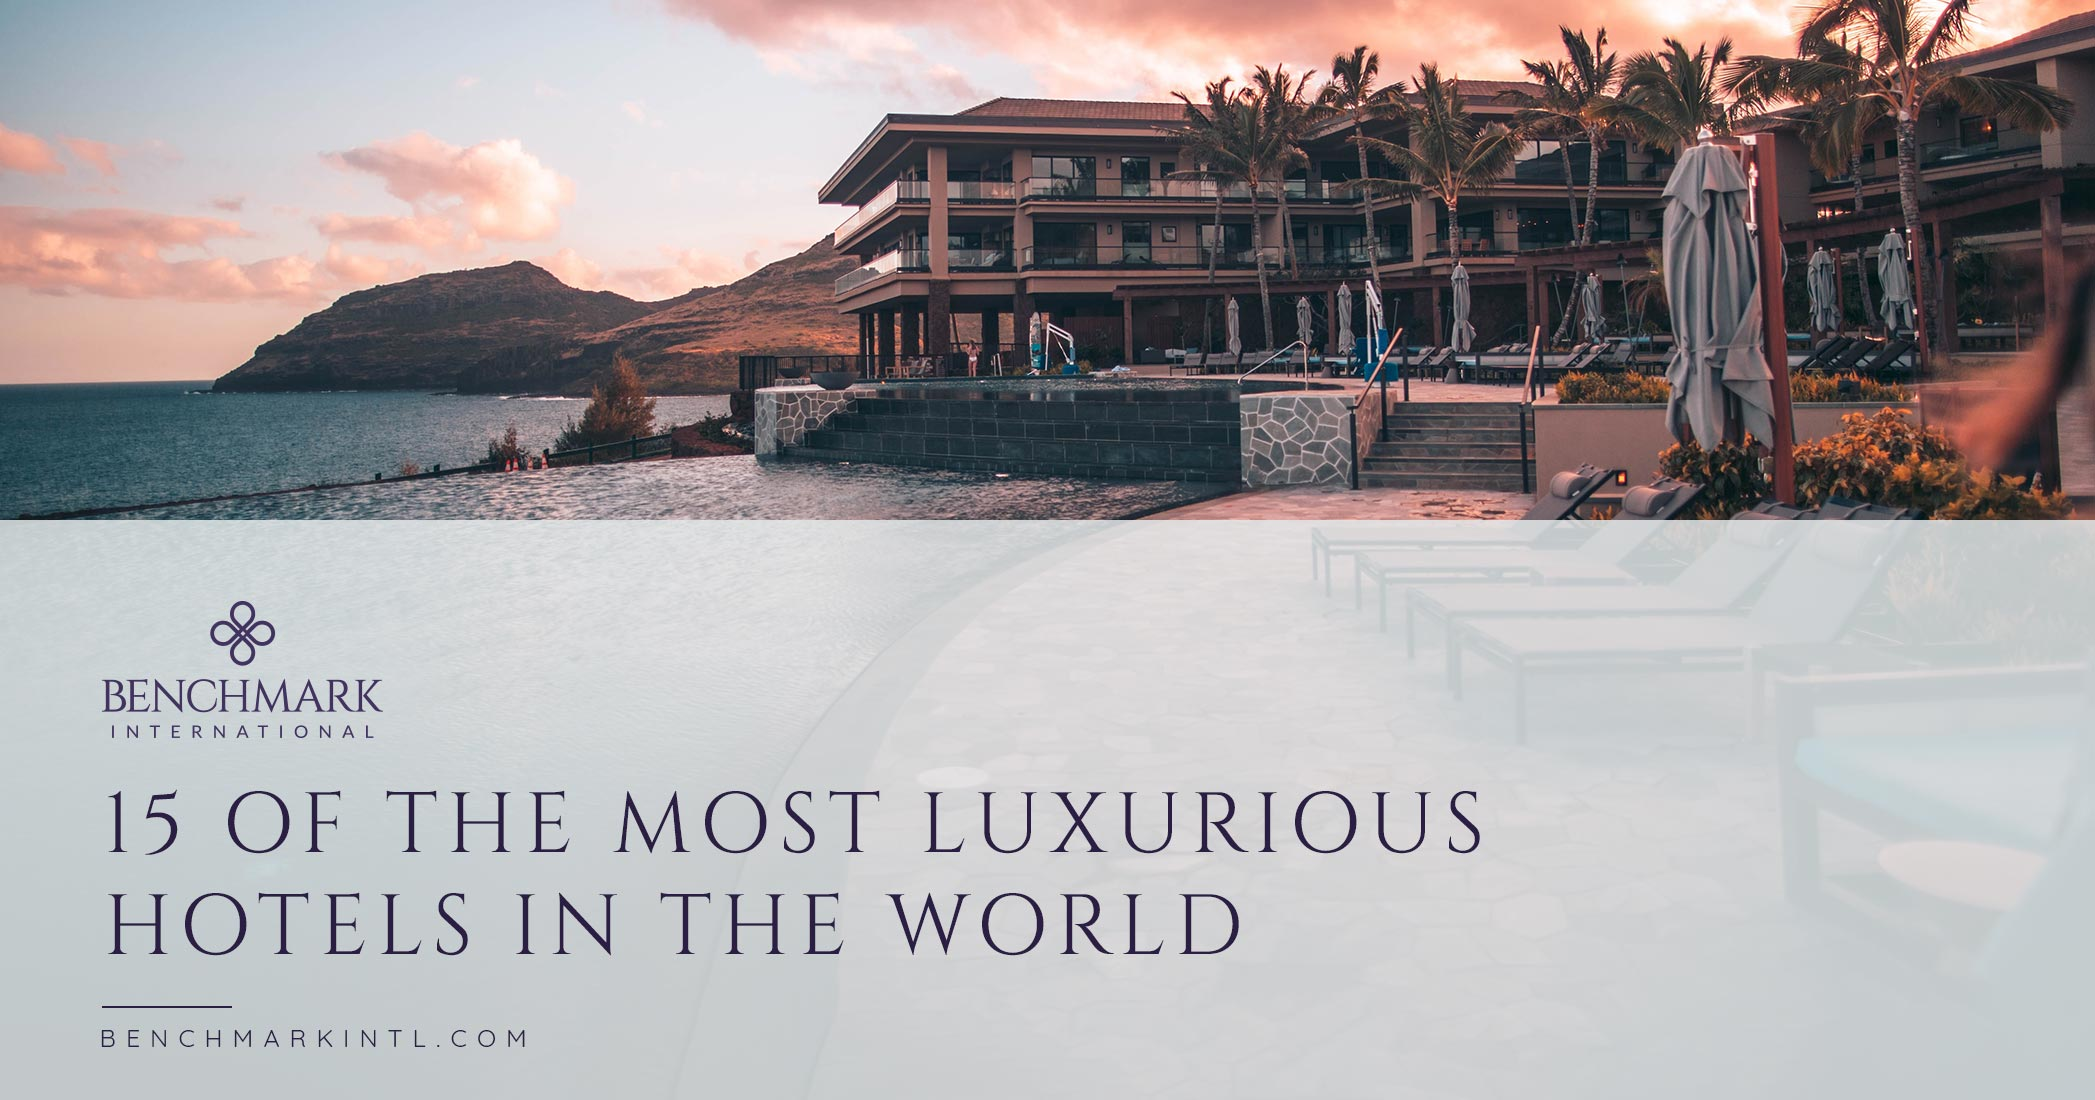 15 of The Most Luxurious Hotels in The World